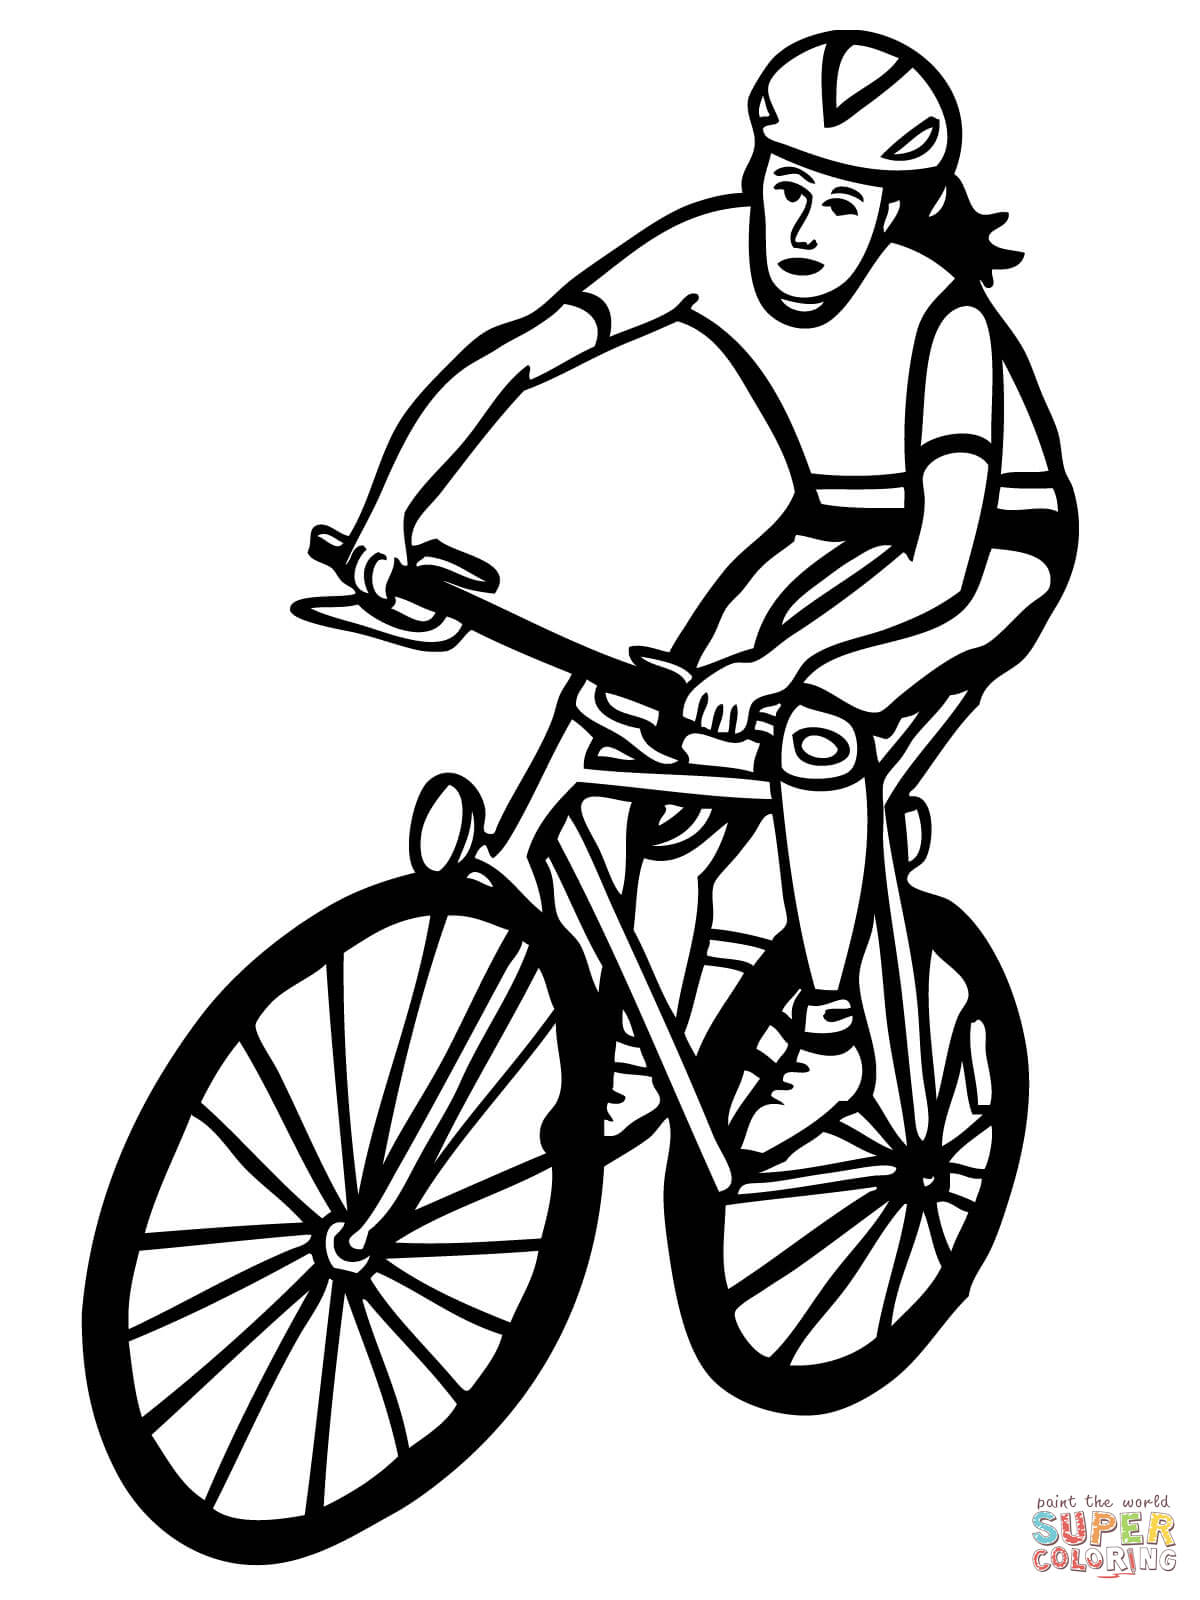 woman-cyclist-coloring-page